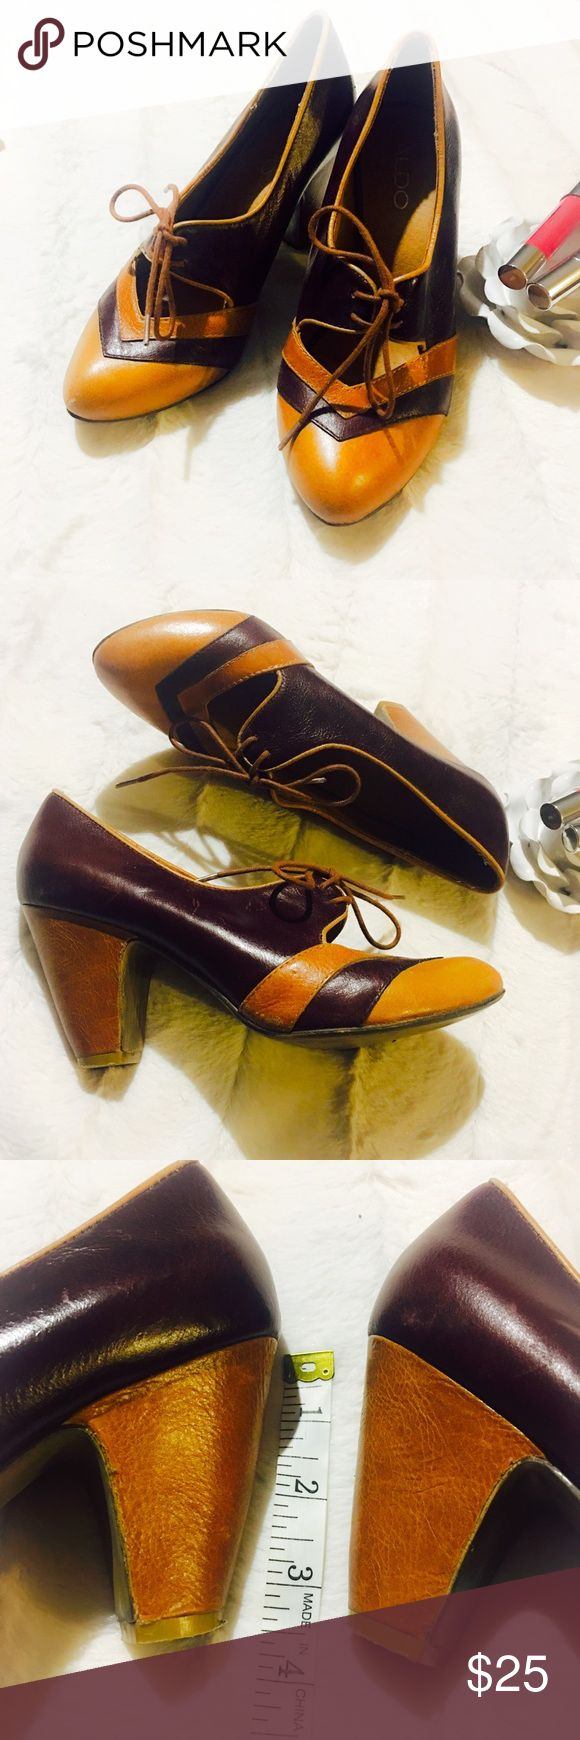 Aldo Two Tone Heels Super cute and fun two toned Lace up heels. Some minor scuffs on leather and heels but nothing major and are in overall great condition! Beautiful brown and caramel colored. Aldo Shoes Heels